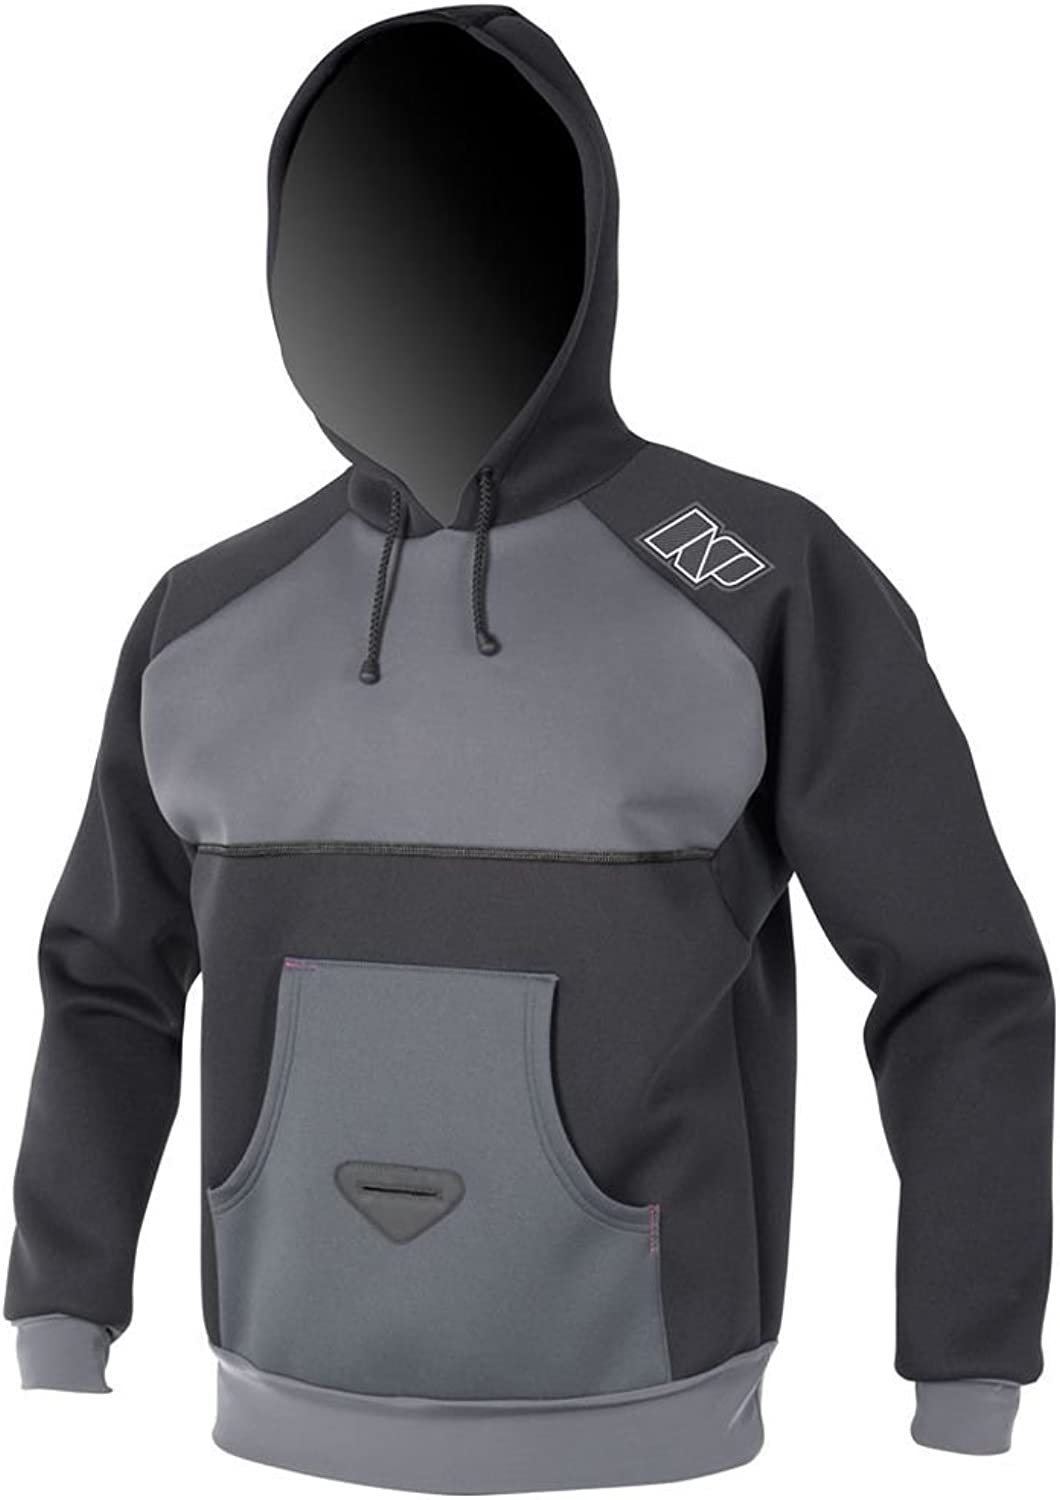 NP Surf Fire Line Insulation Neoprene Wetsuit Hoodie with Reinforced Harness Hook